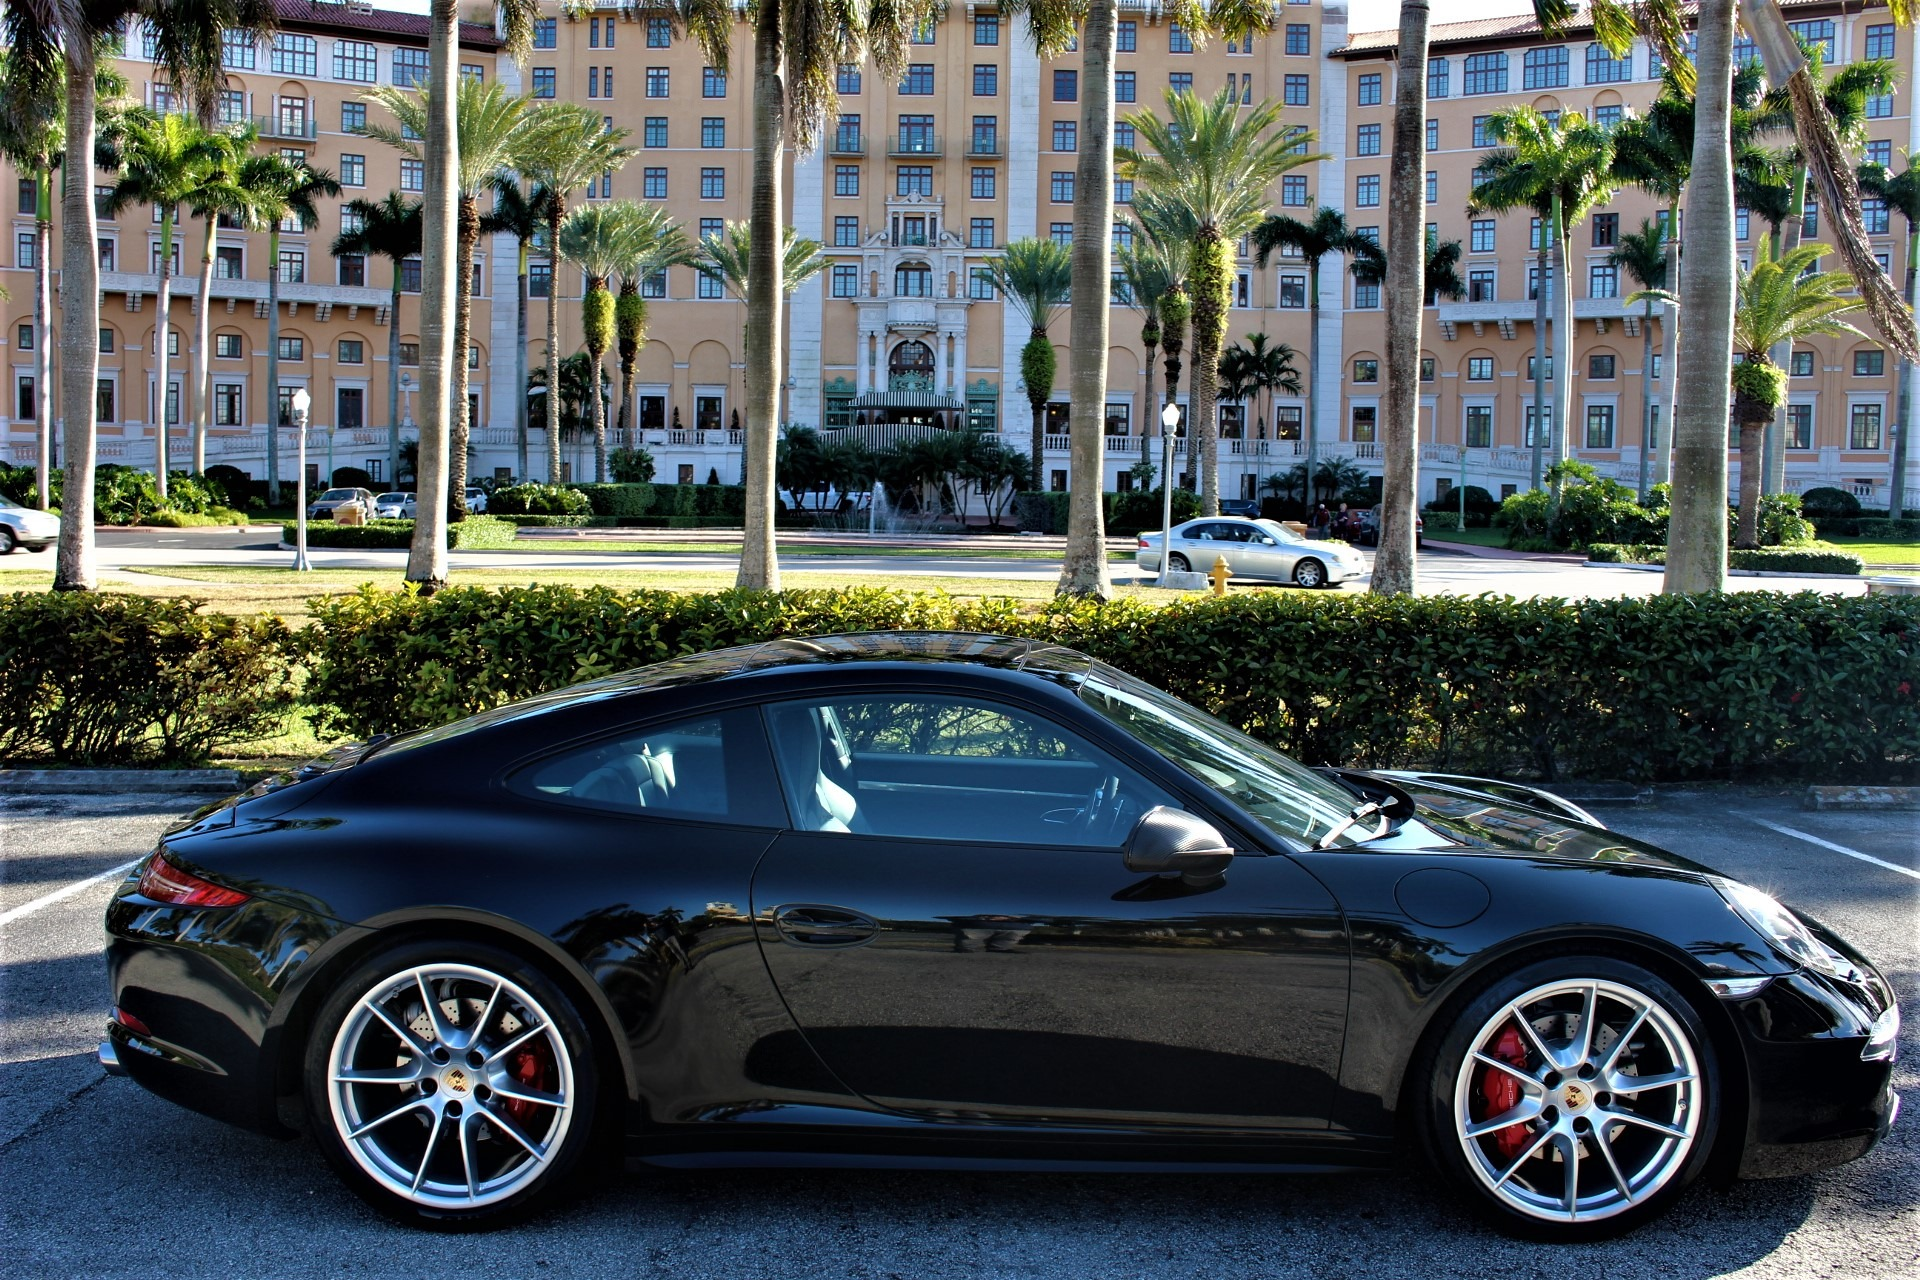 Used 2014 Porsche 911 Carrera 4S for sale Sold at The Gables Sports Cars in Miami FL 33146 1